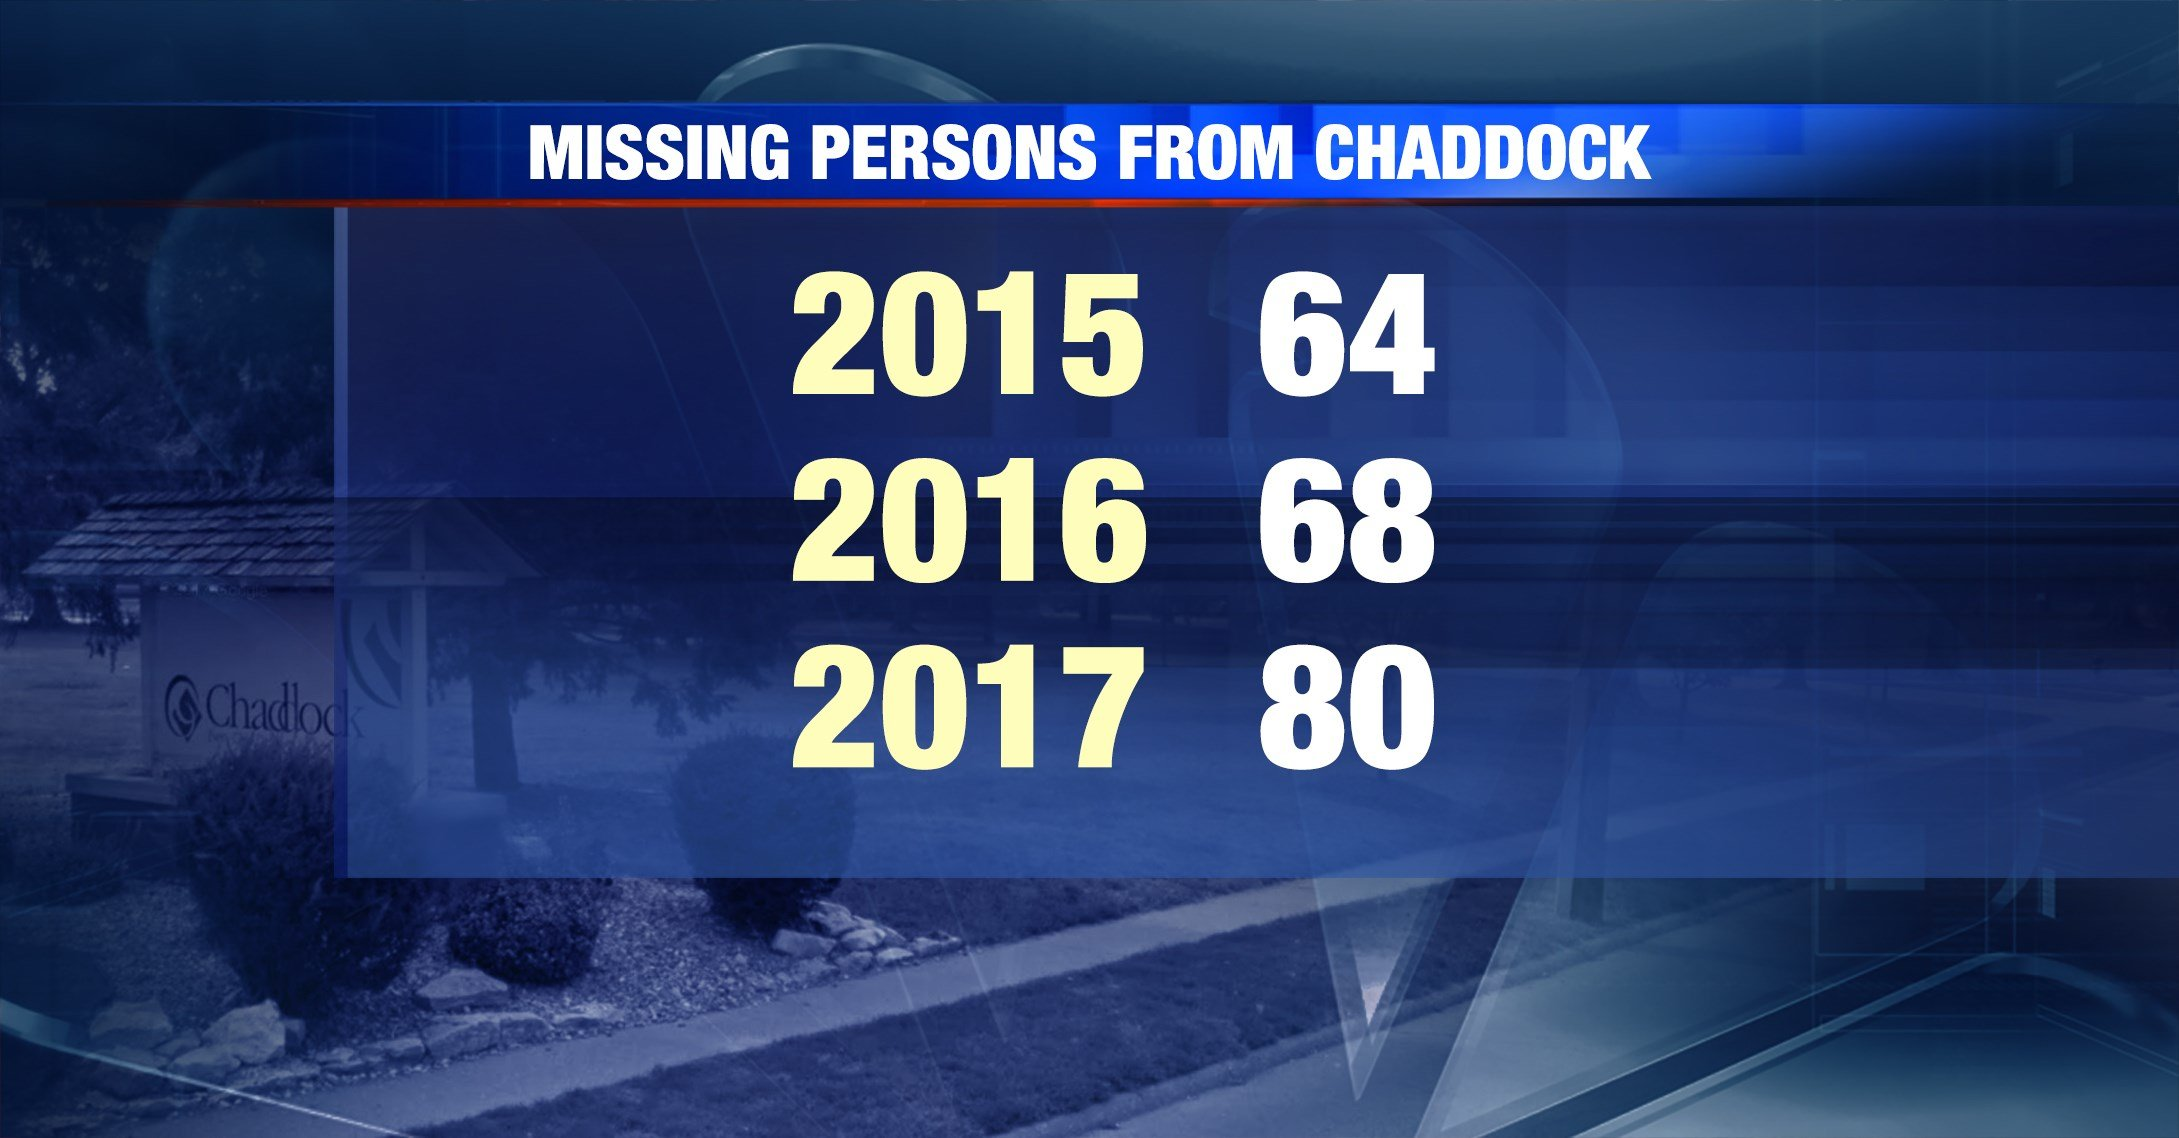 Quincy Police numbers for calls to Chaddock for missing persons